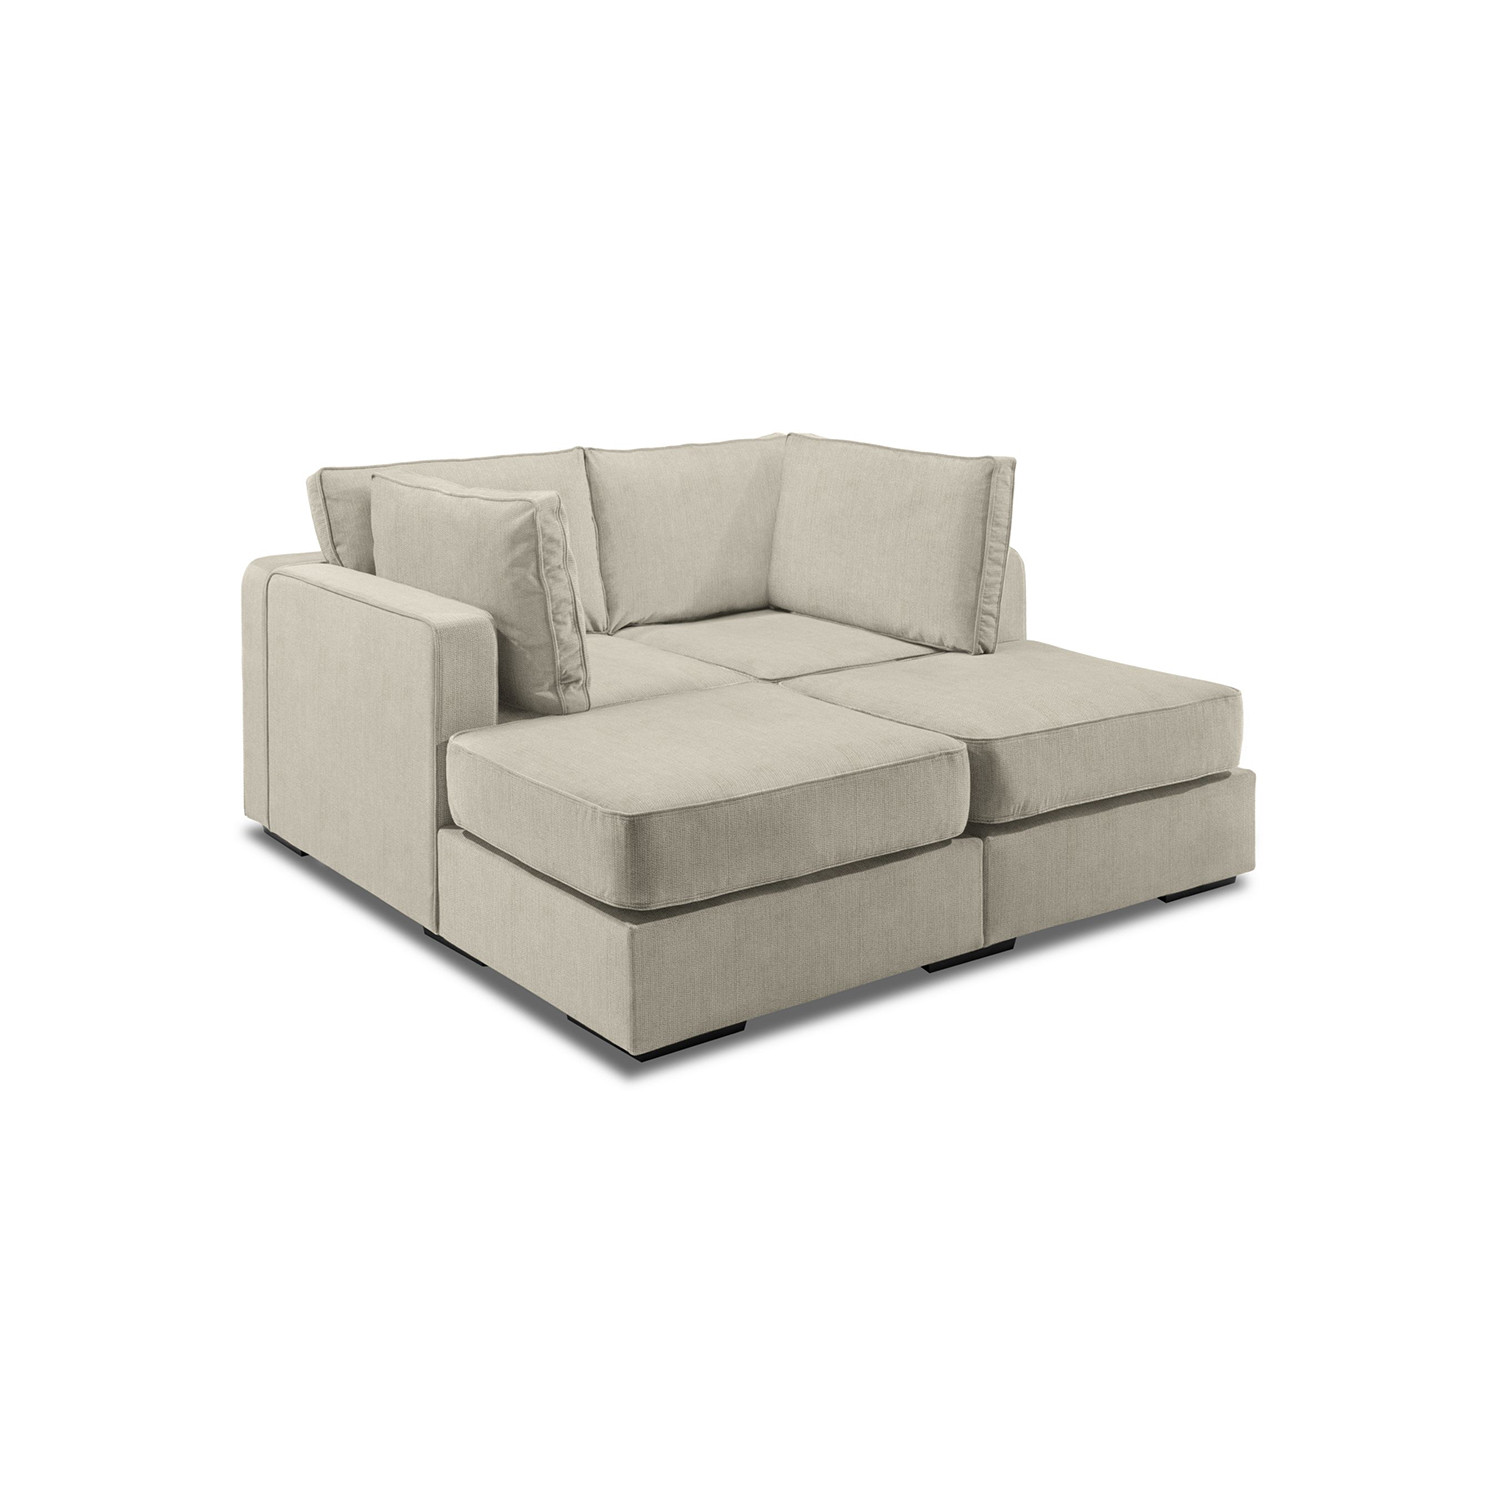 5 Series Sactionals // M Lounger (Tan) - LoveSac - Touch of